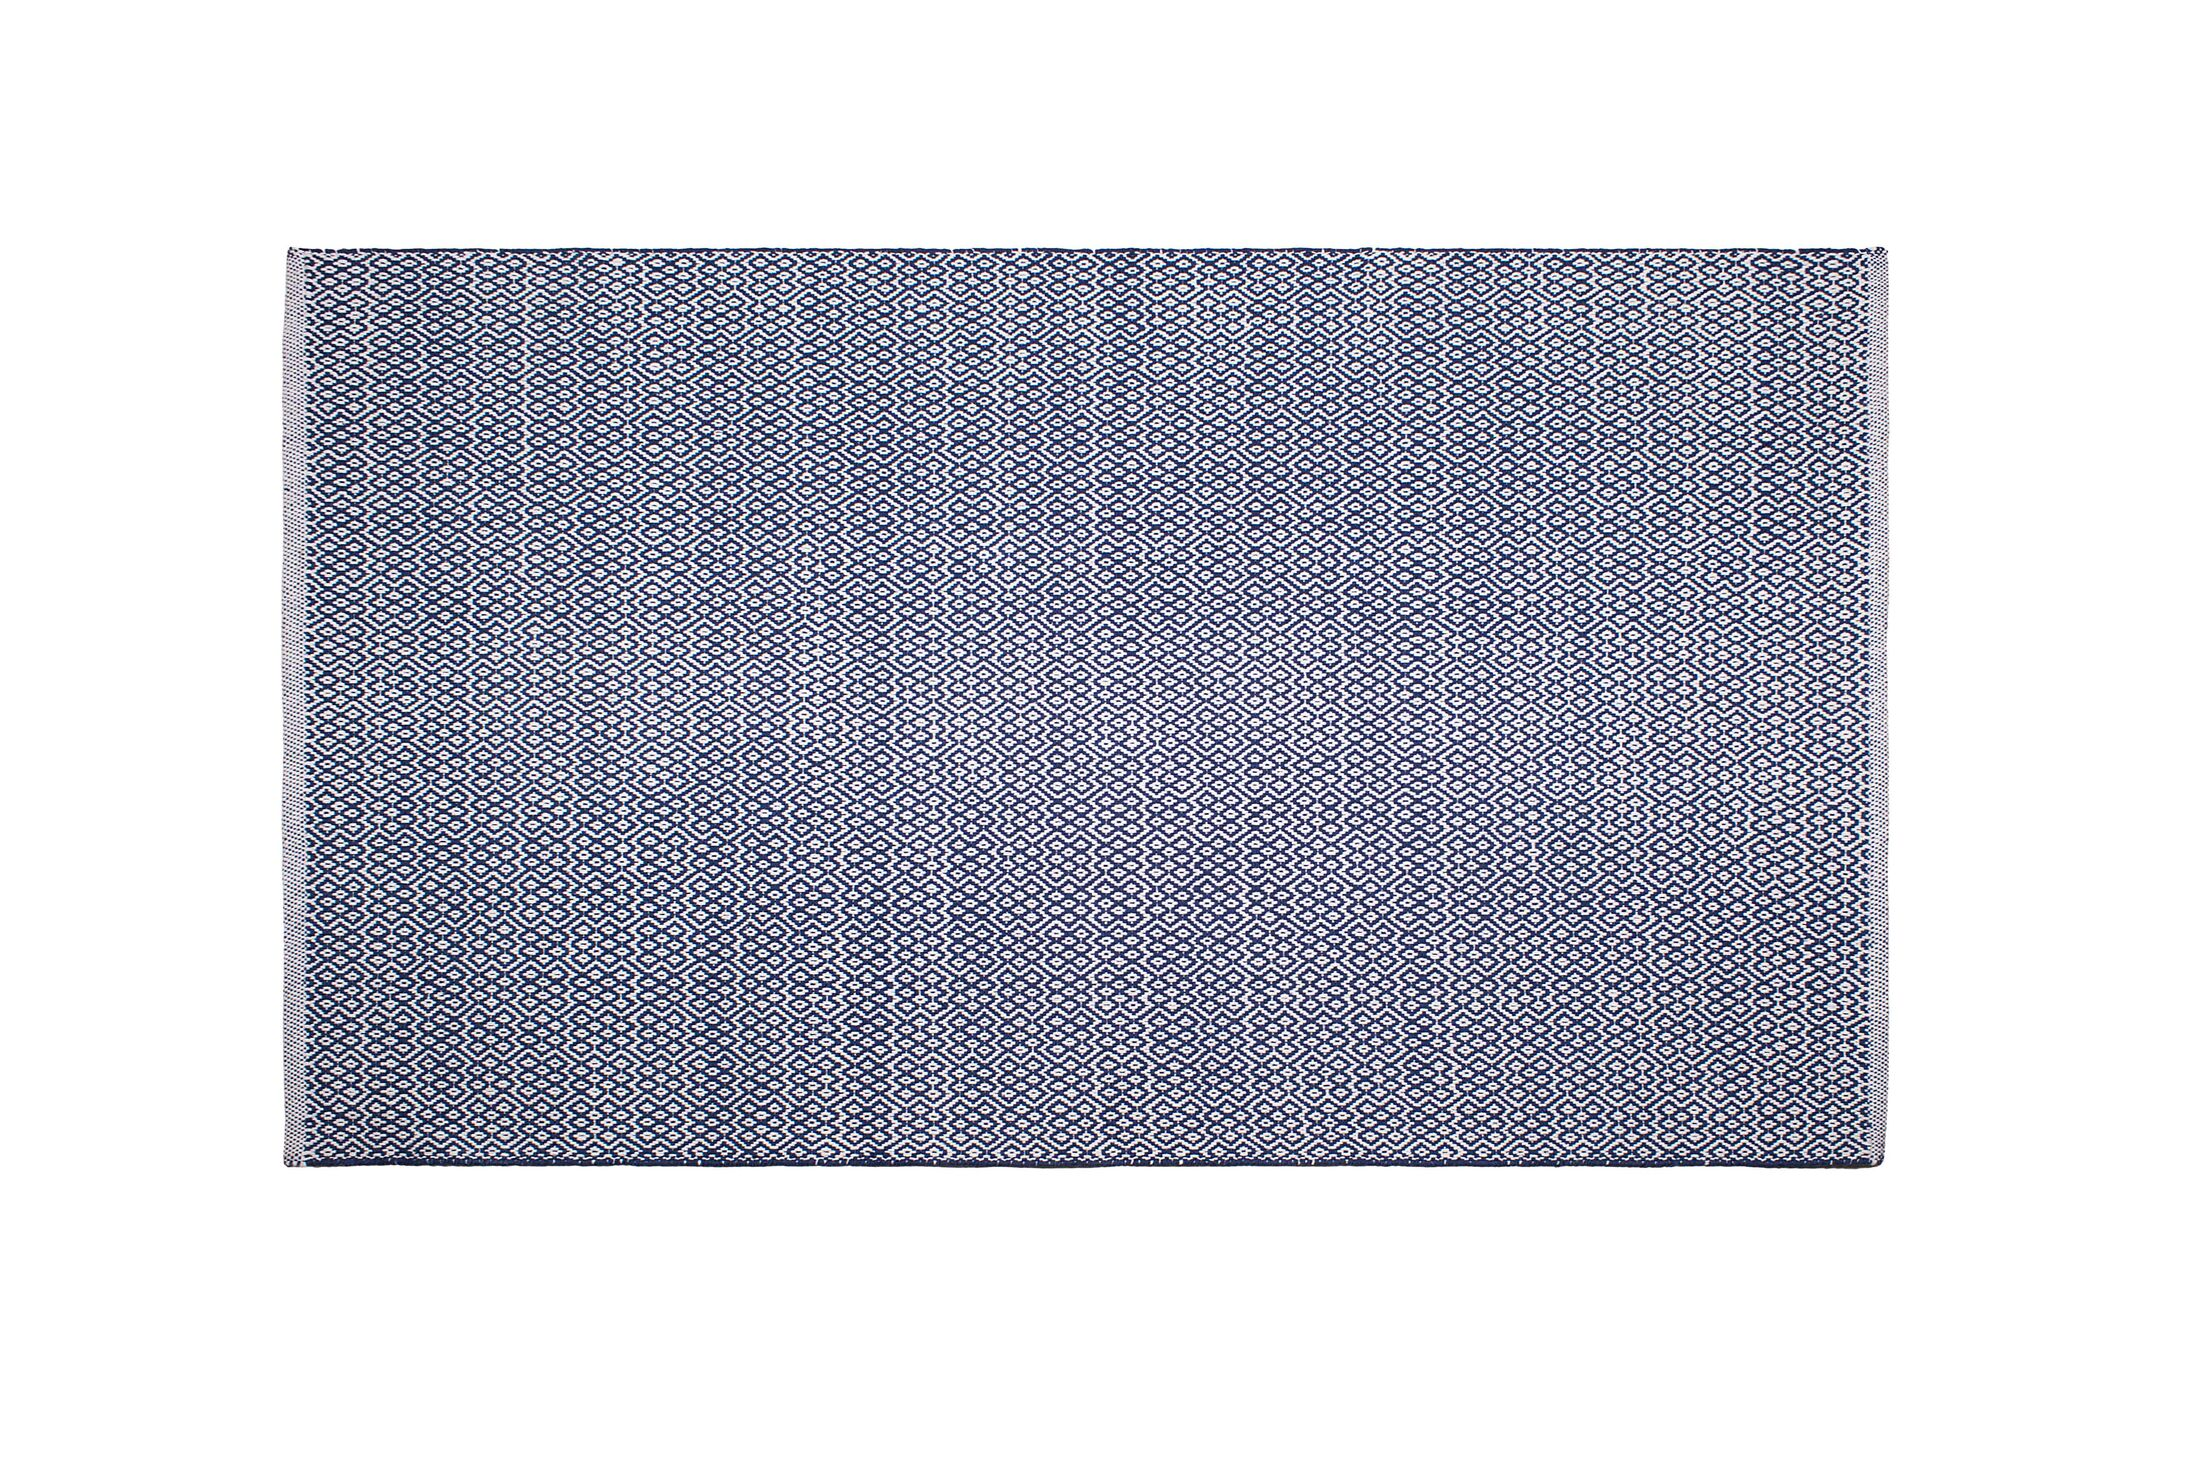 Mcgreevy Hand-Woven Cotton Blue Area Rug Rug Size: Rectangle 8' x 10'